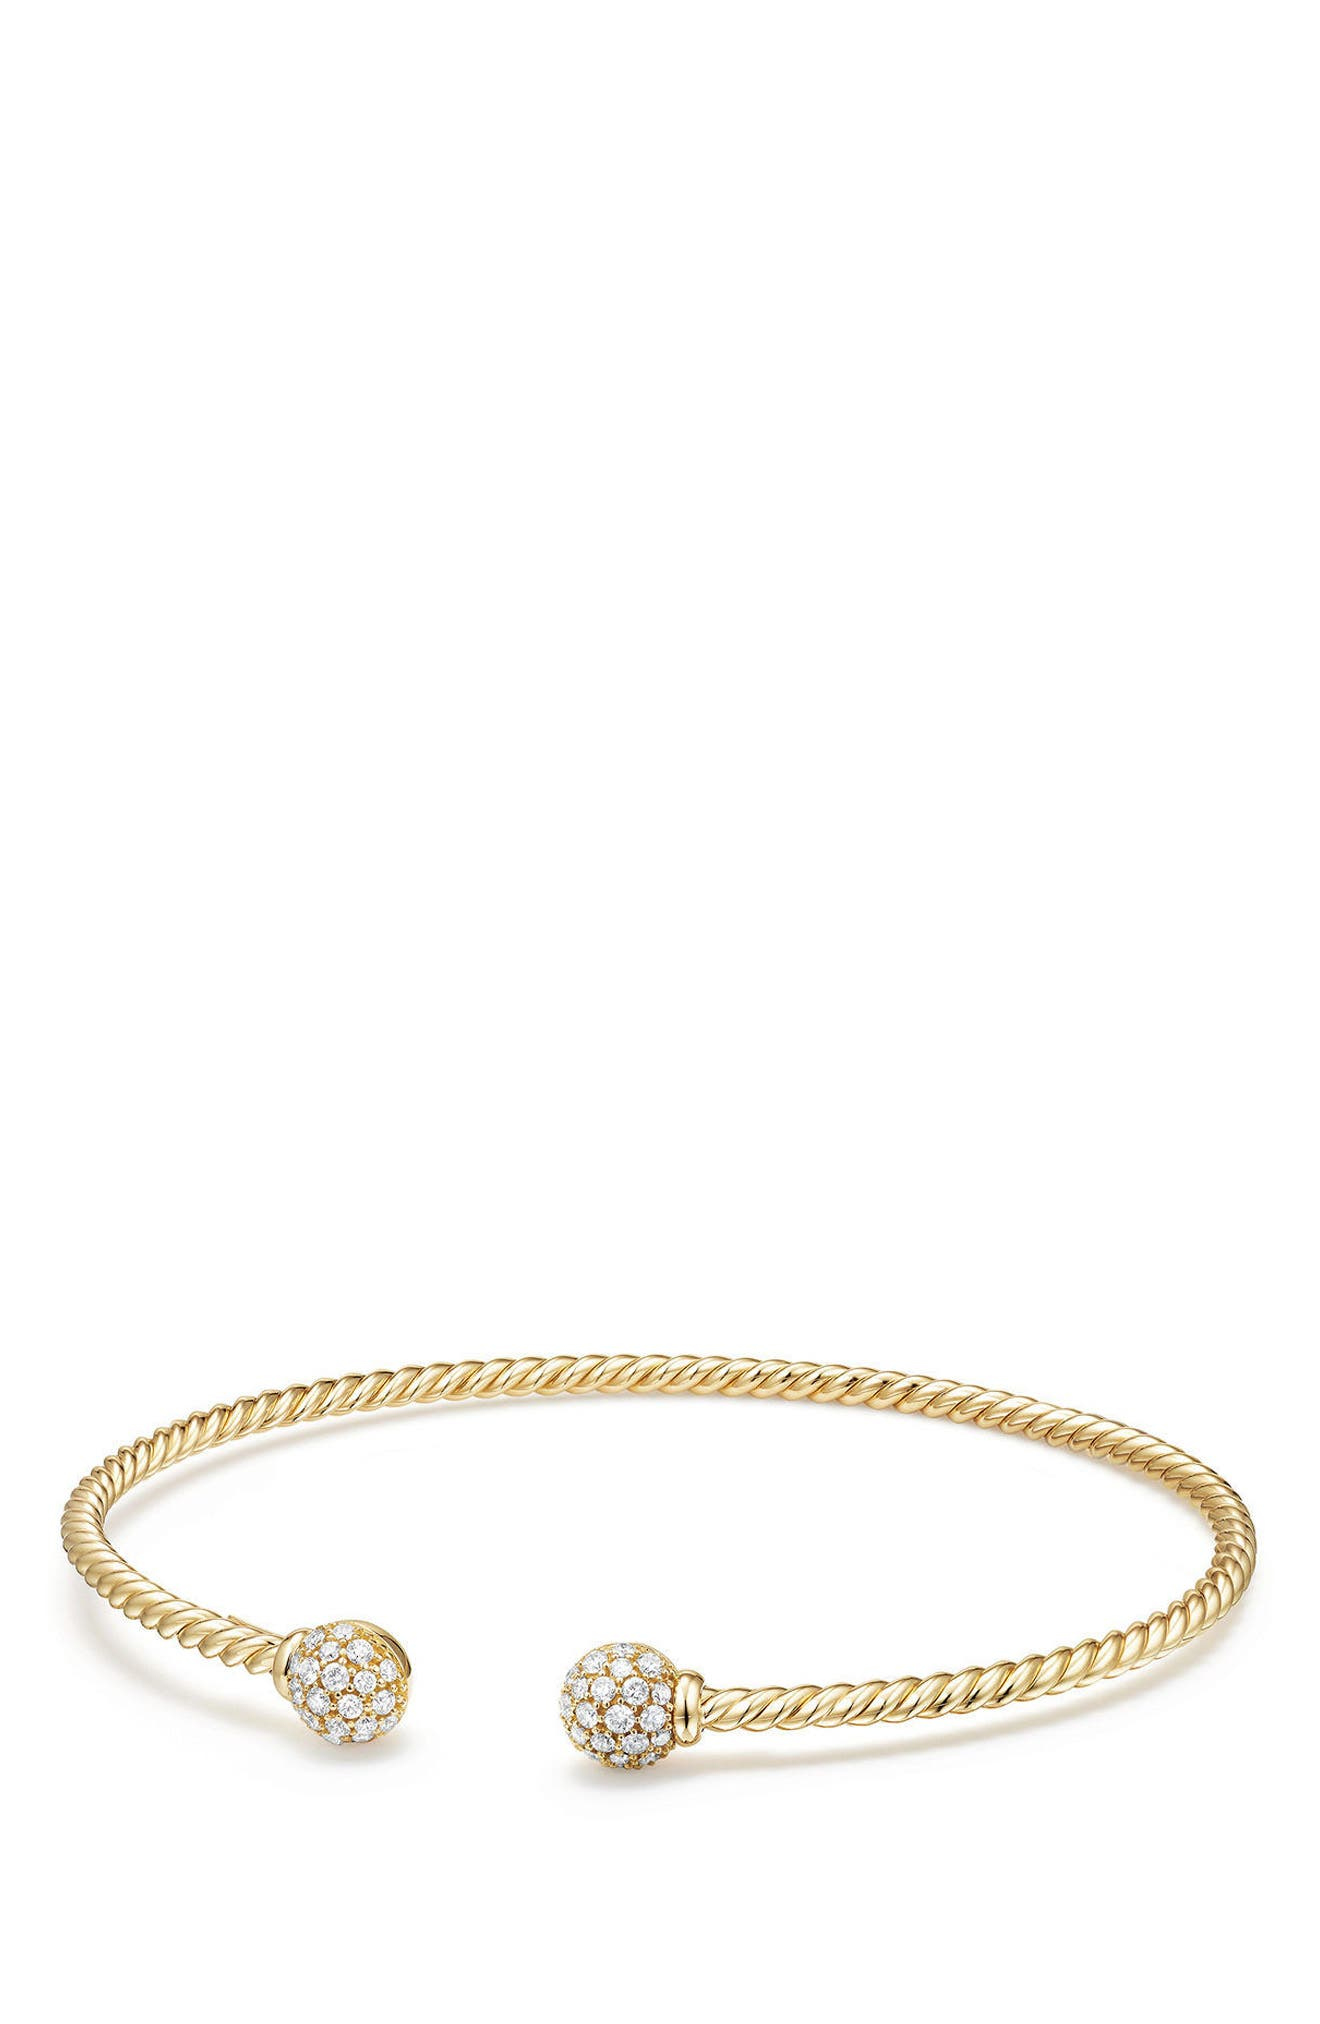 DAVID YURMAN,                             Solari Bead Bracelet with Diamonds in 18K Gold,                             Main thumbnail 1, color,                             YELLOW GOLD/ DIAMOND